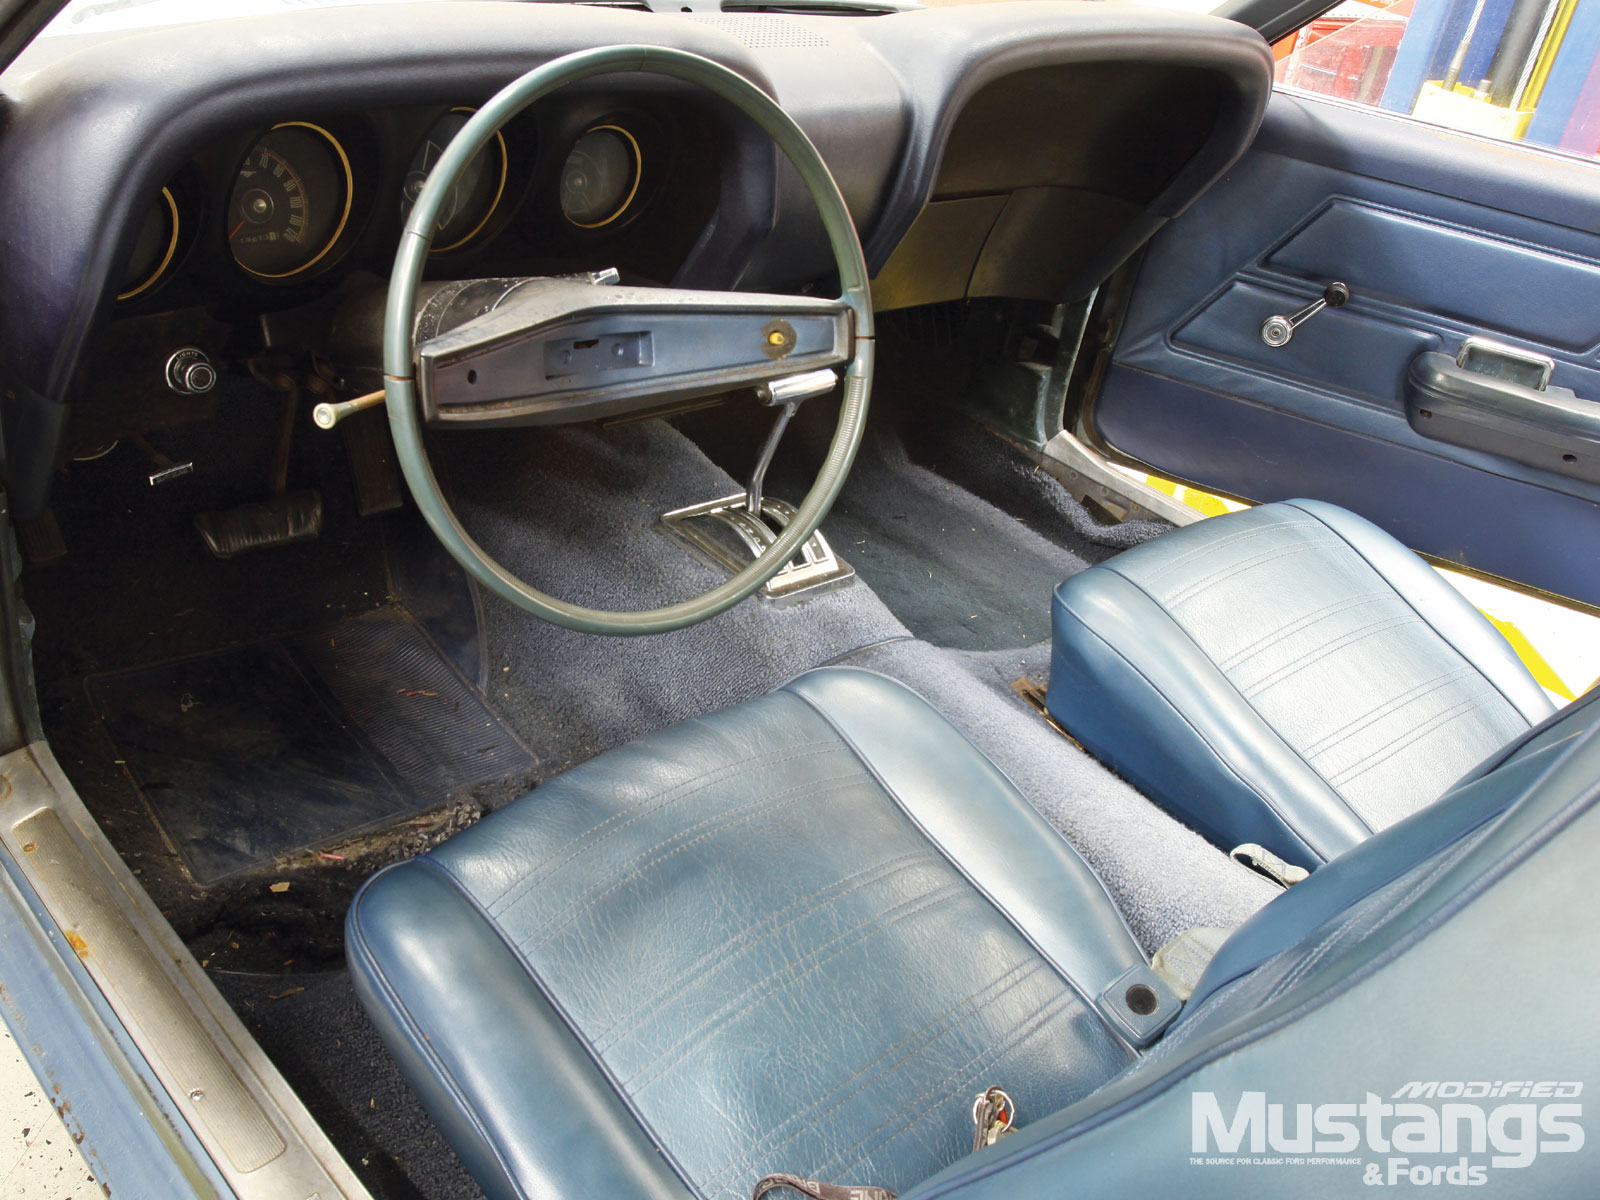 1970 Ford Mustang Project High School Hauler Interior